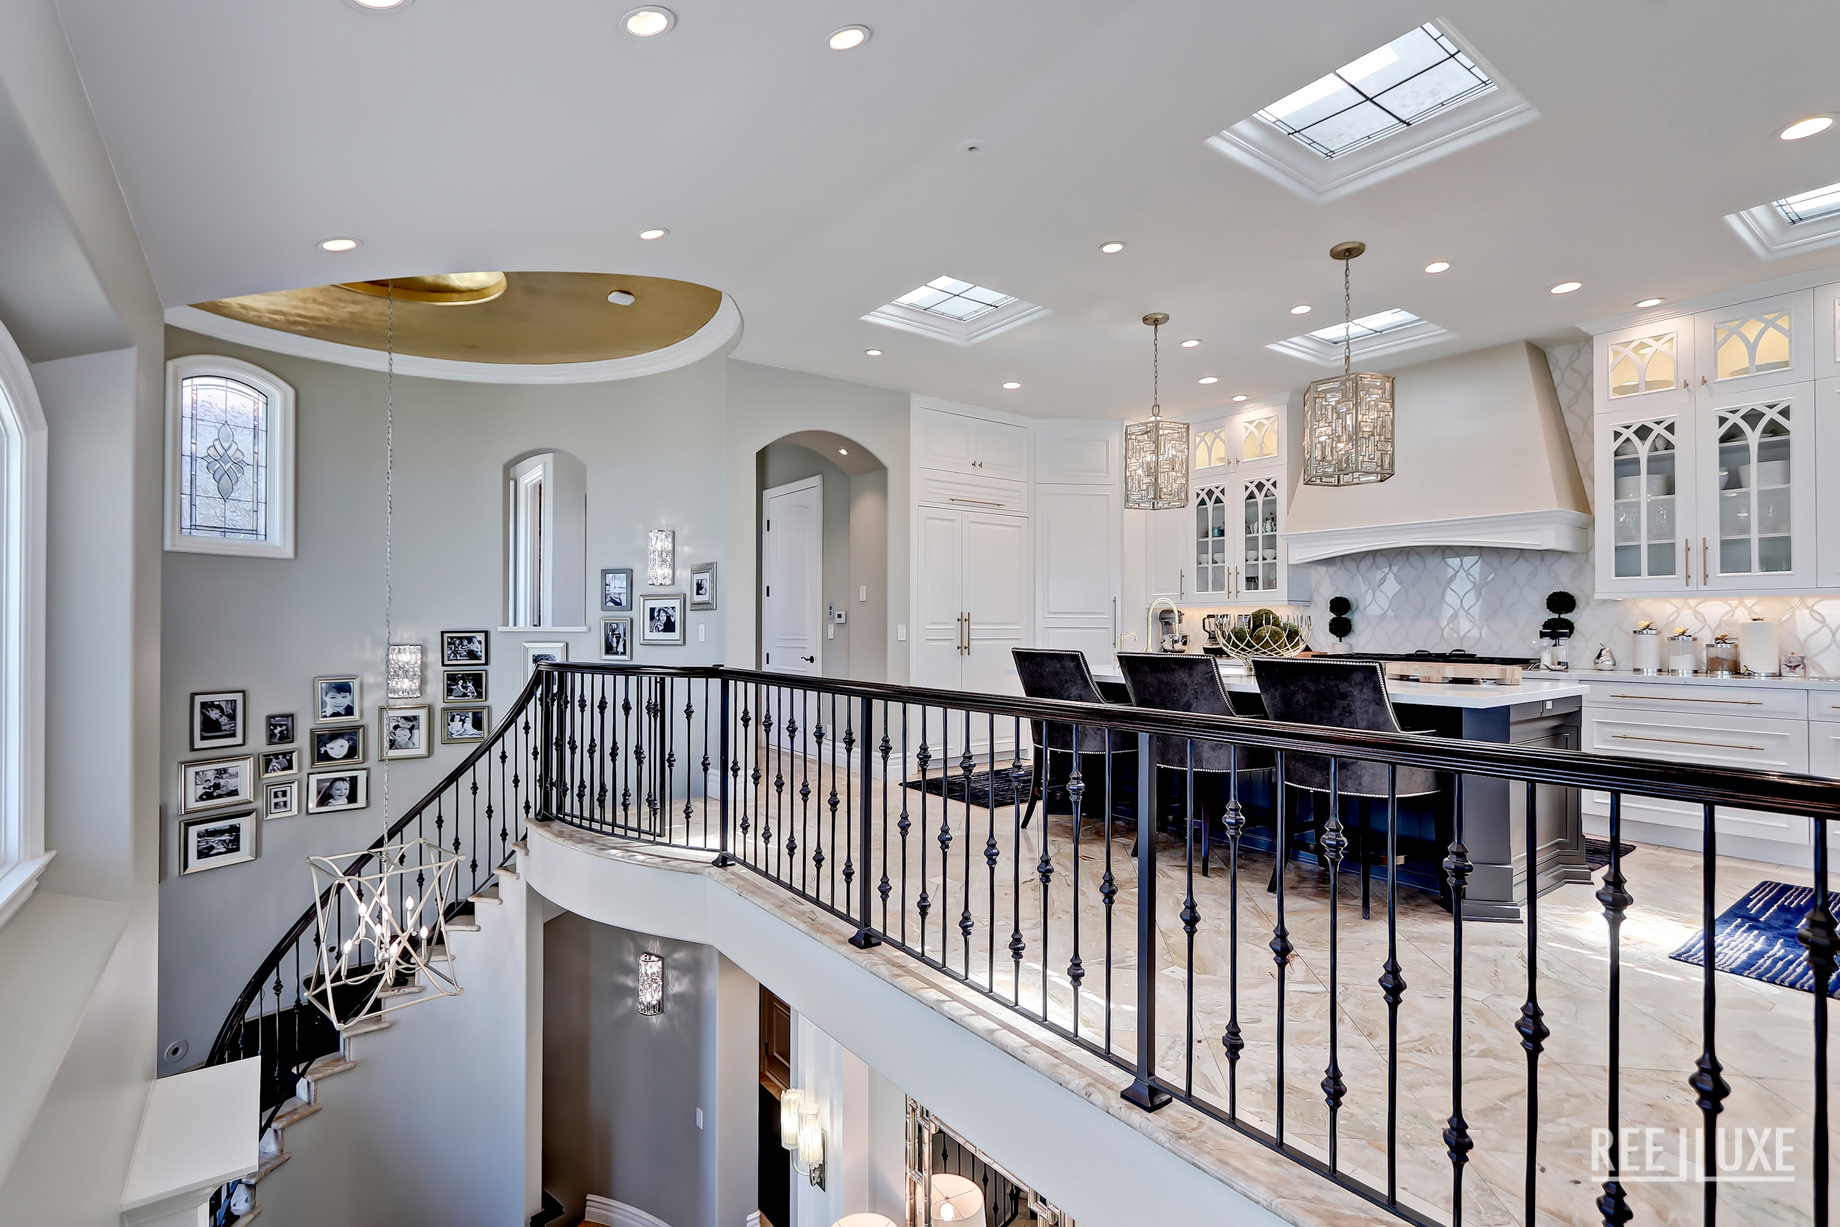 Ultimate California Luxury Living - 1920 The Strand, Manhattan Beach, CA, USA - Stairs and Kitchen